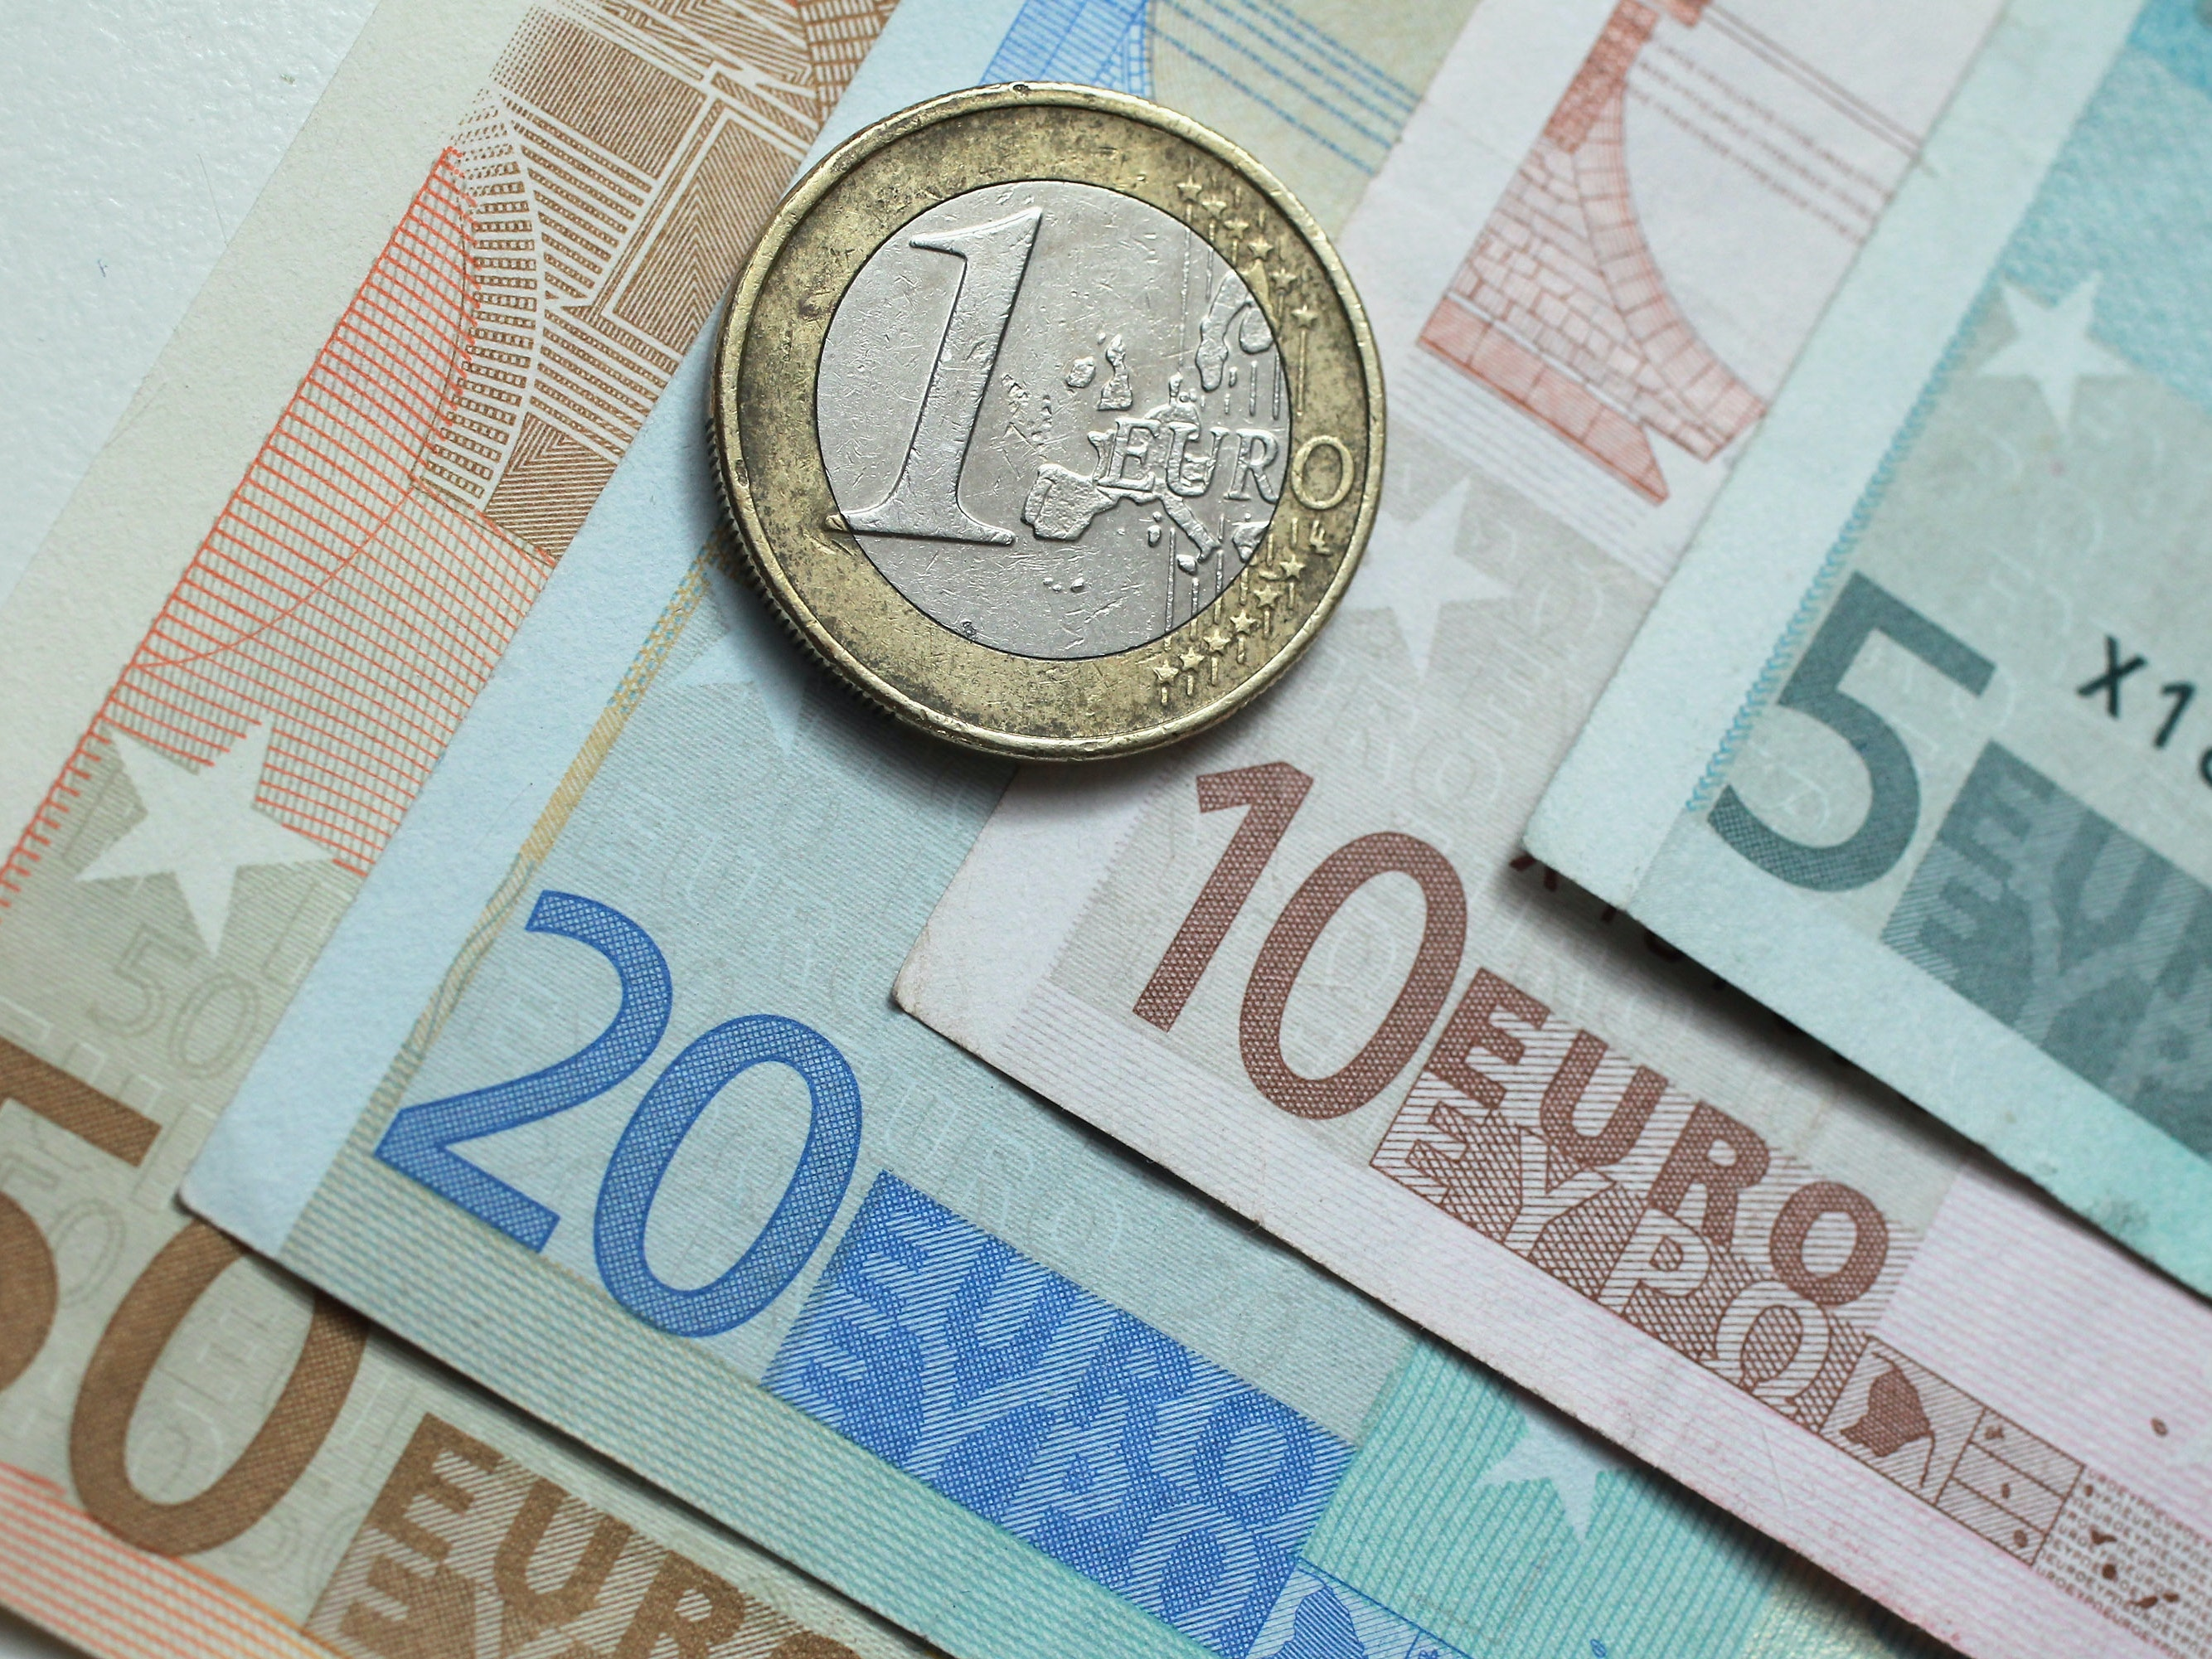 In this photo illustration a one Euro coin lies on Euro currency bills on June 21, 2011 in Berlin, Germany. Eurozone finance ministers are currently seeking to find a solution to Greece's pressing debt problems, including the prospect of the country's inability to meet its financial obligations unless it gets a fresh, multi-billion Euro loan by July 1. Greece's increasing tilt towards bankruptcy is rattling worldwide financial markets, and leading economists warn that bankruptcy would endanger the stability of the Euro and have dire global consequences.